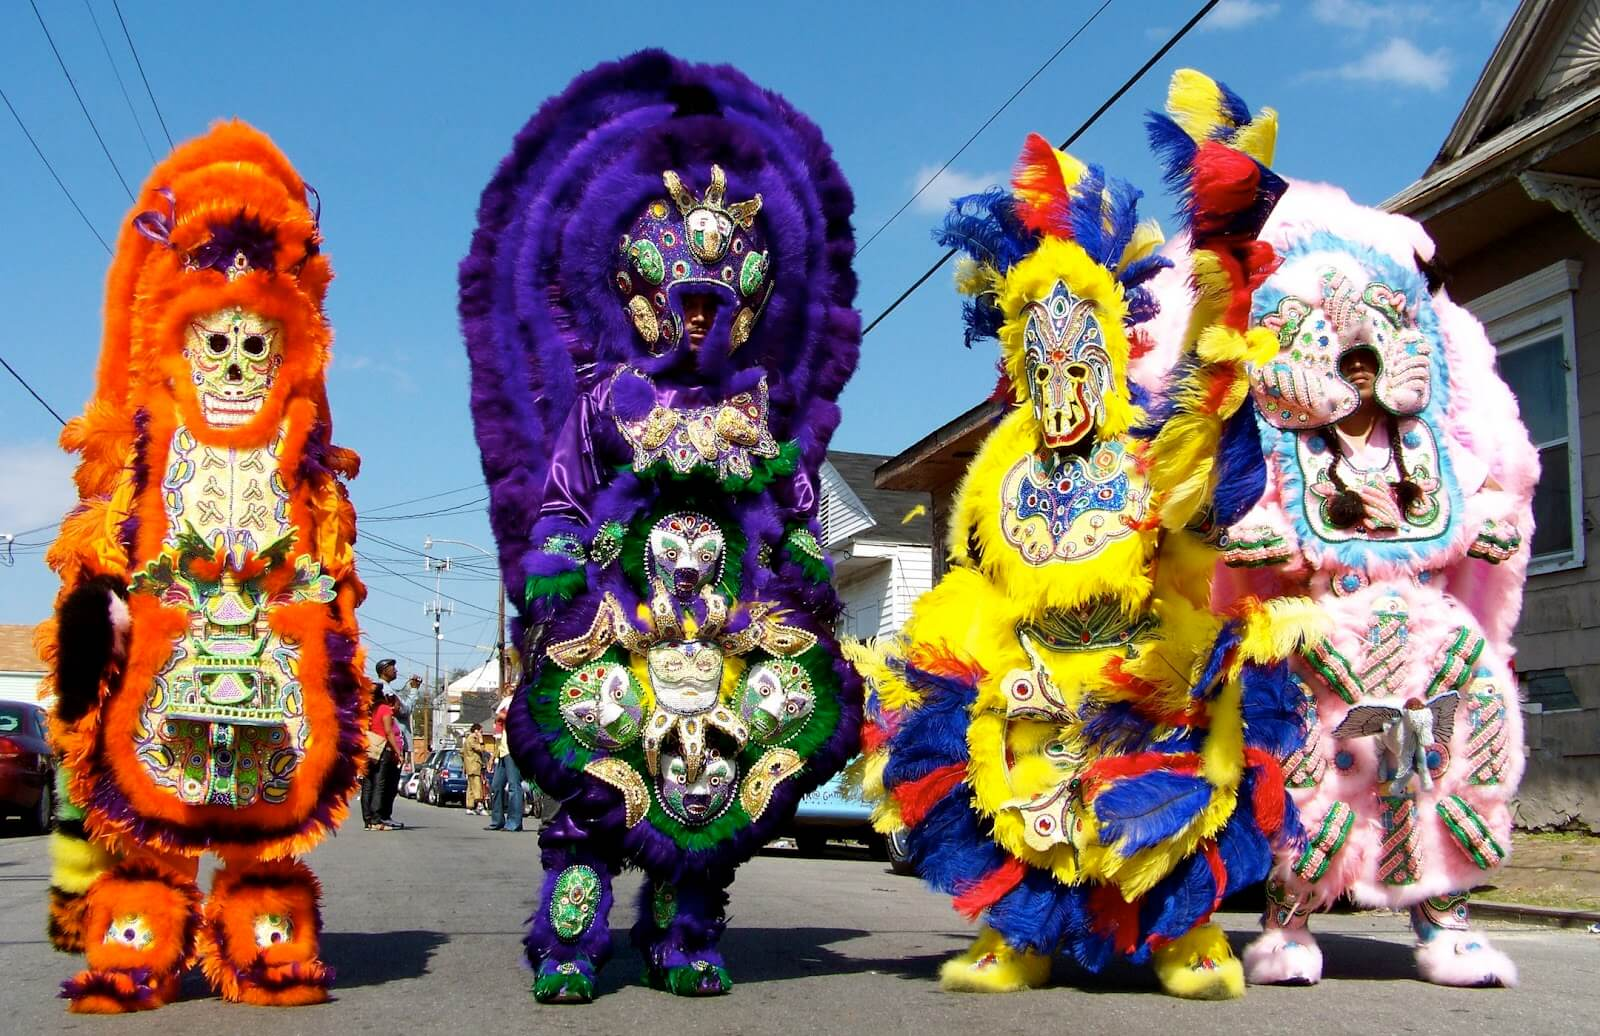 House of Dance & Feathers Things to do in New Orleans